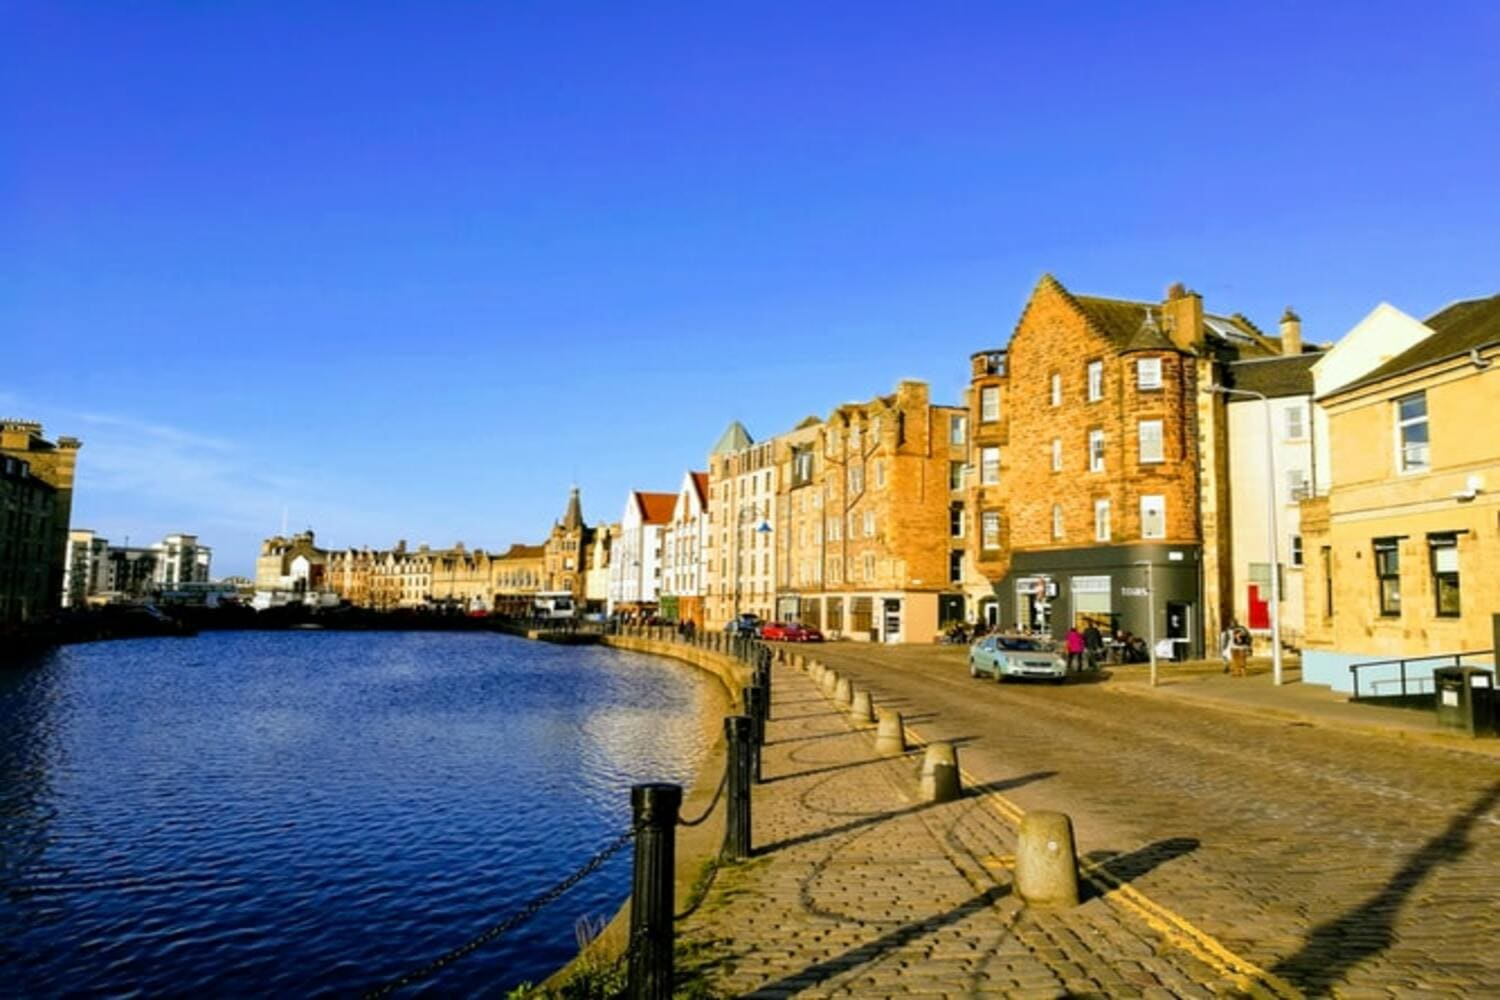 The Shore en el barrio de Leith en Edimburgo